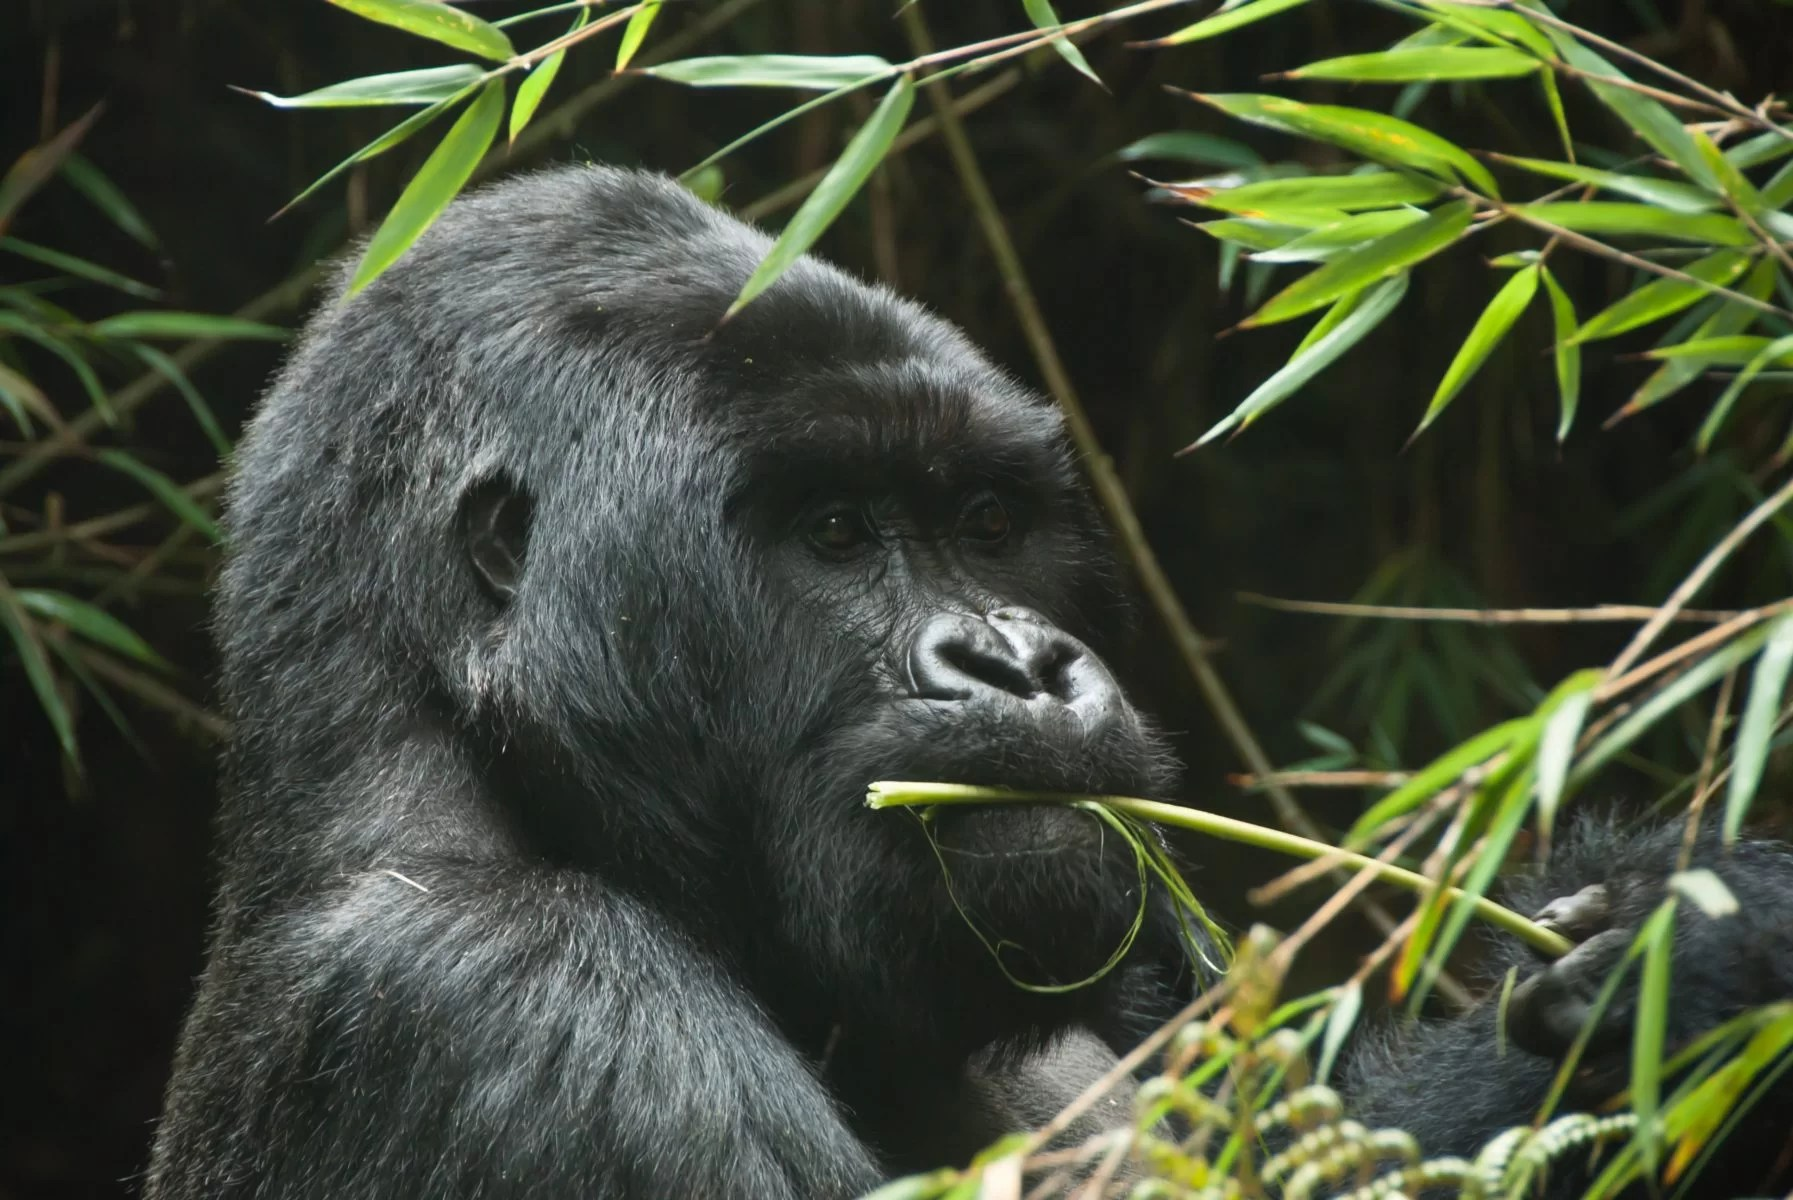 A Gorilla eating plants in the forest, Rwanda